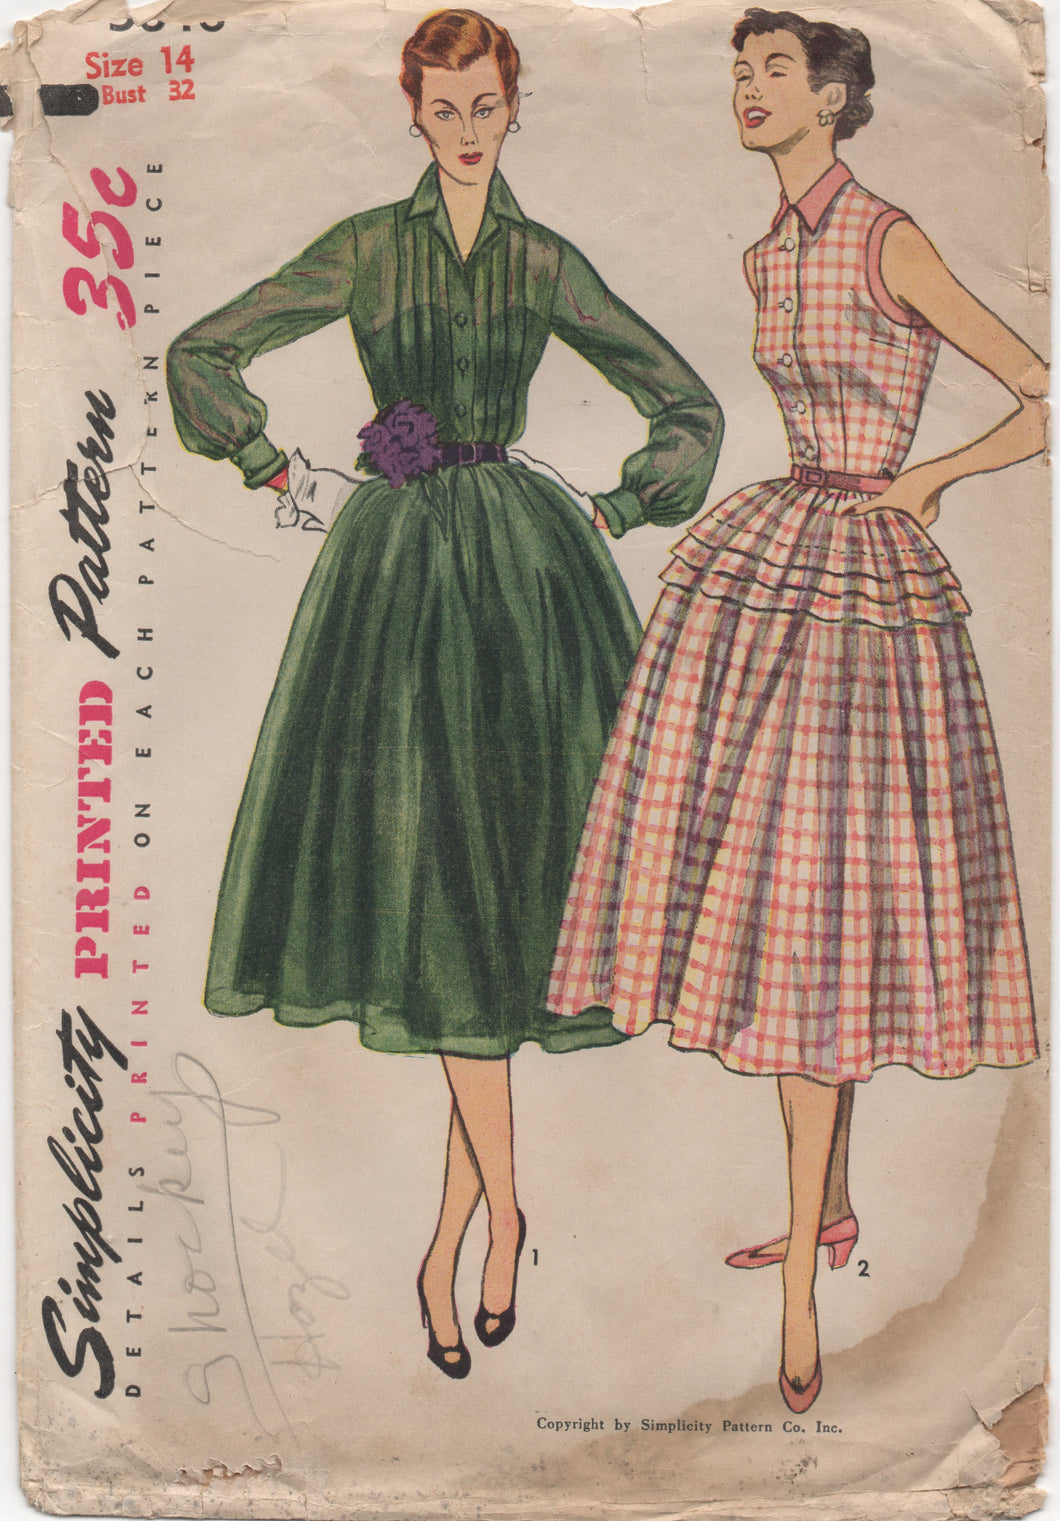 1950's Simplicity Afternoon Tea Dress Pattern - Bust 32